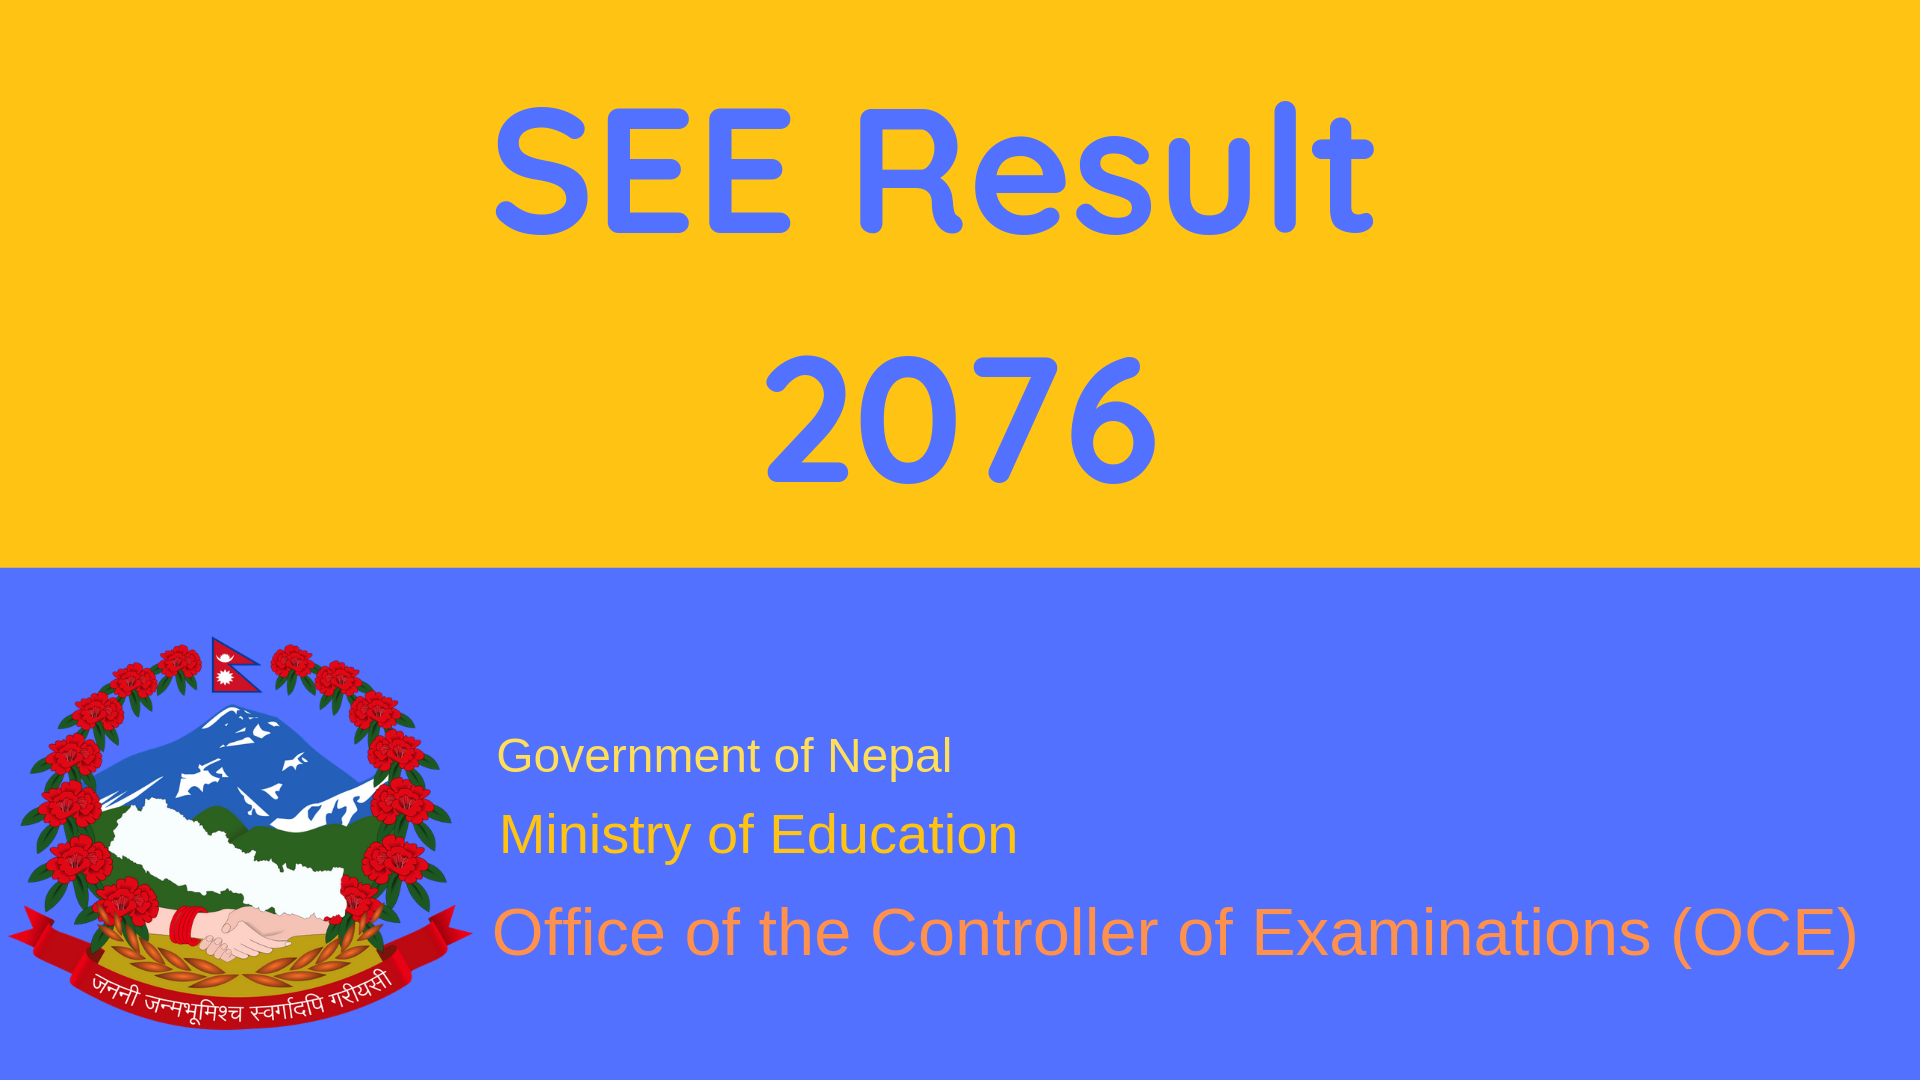 SEE Result 2076